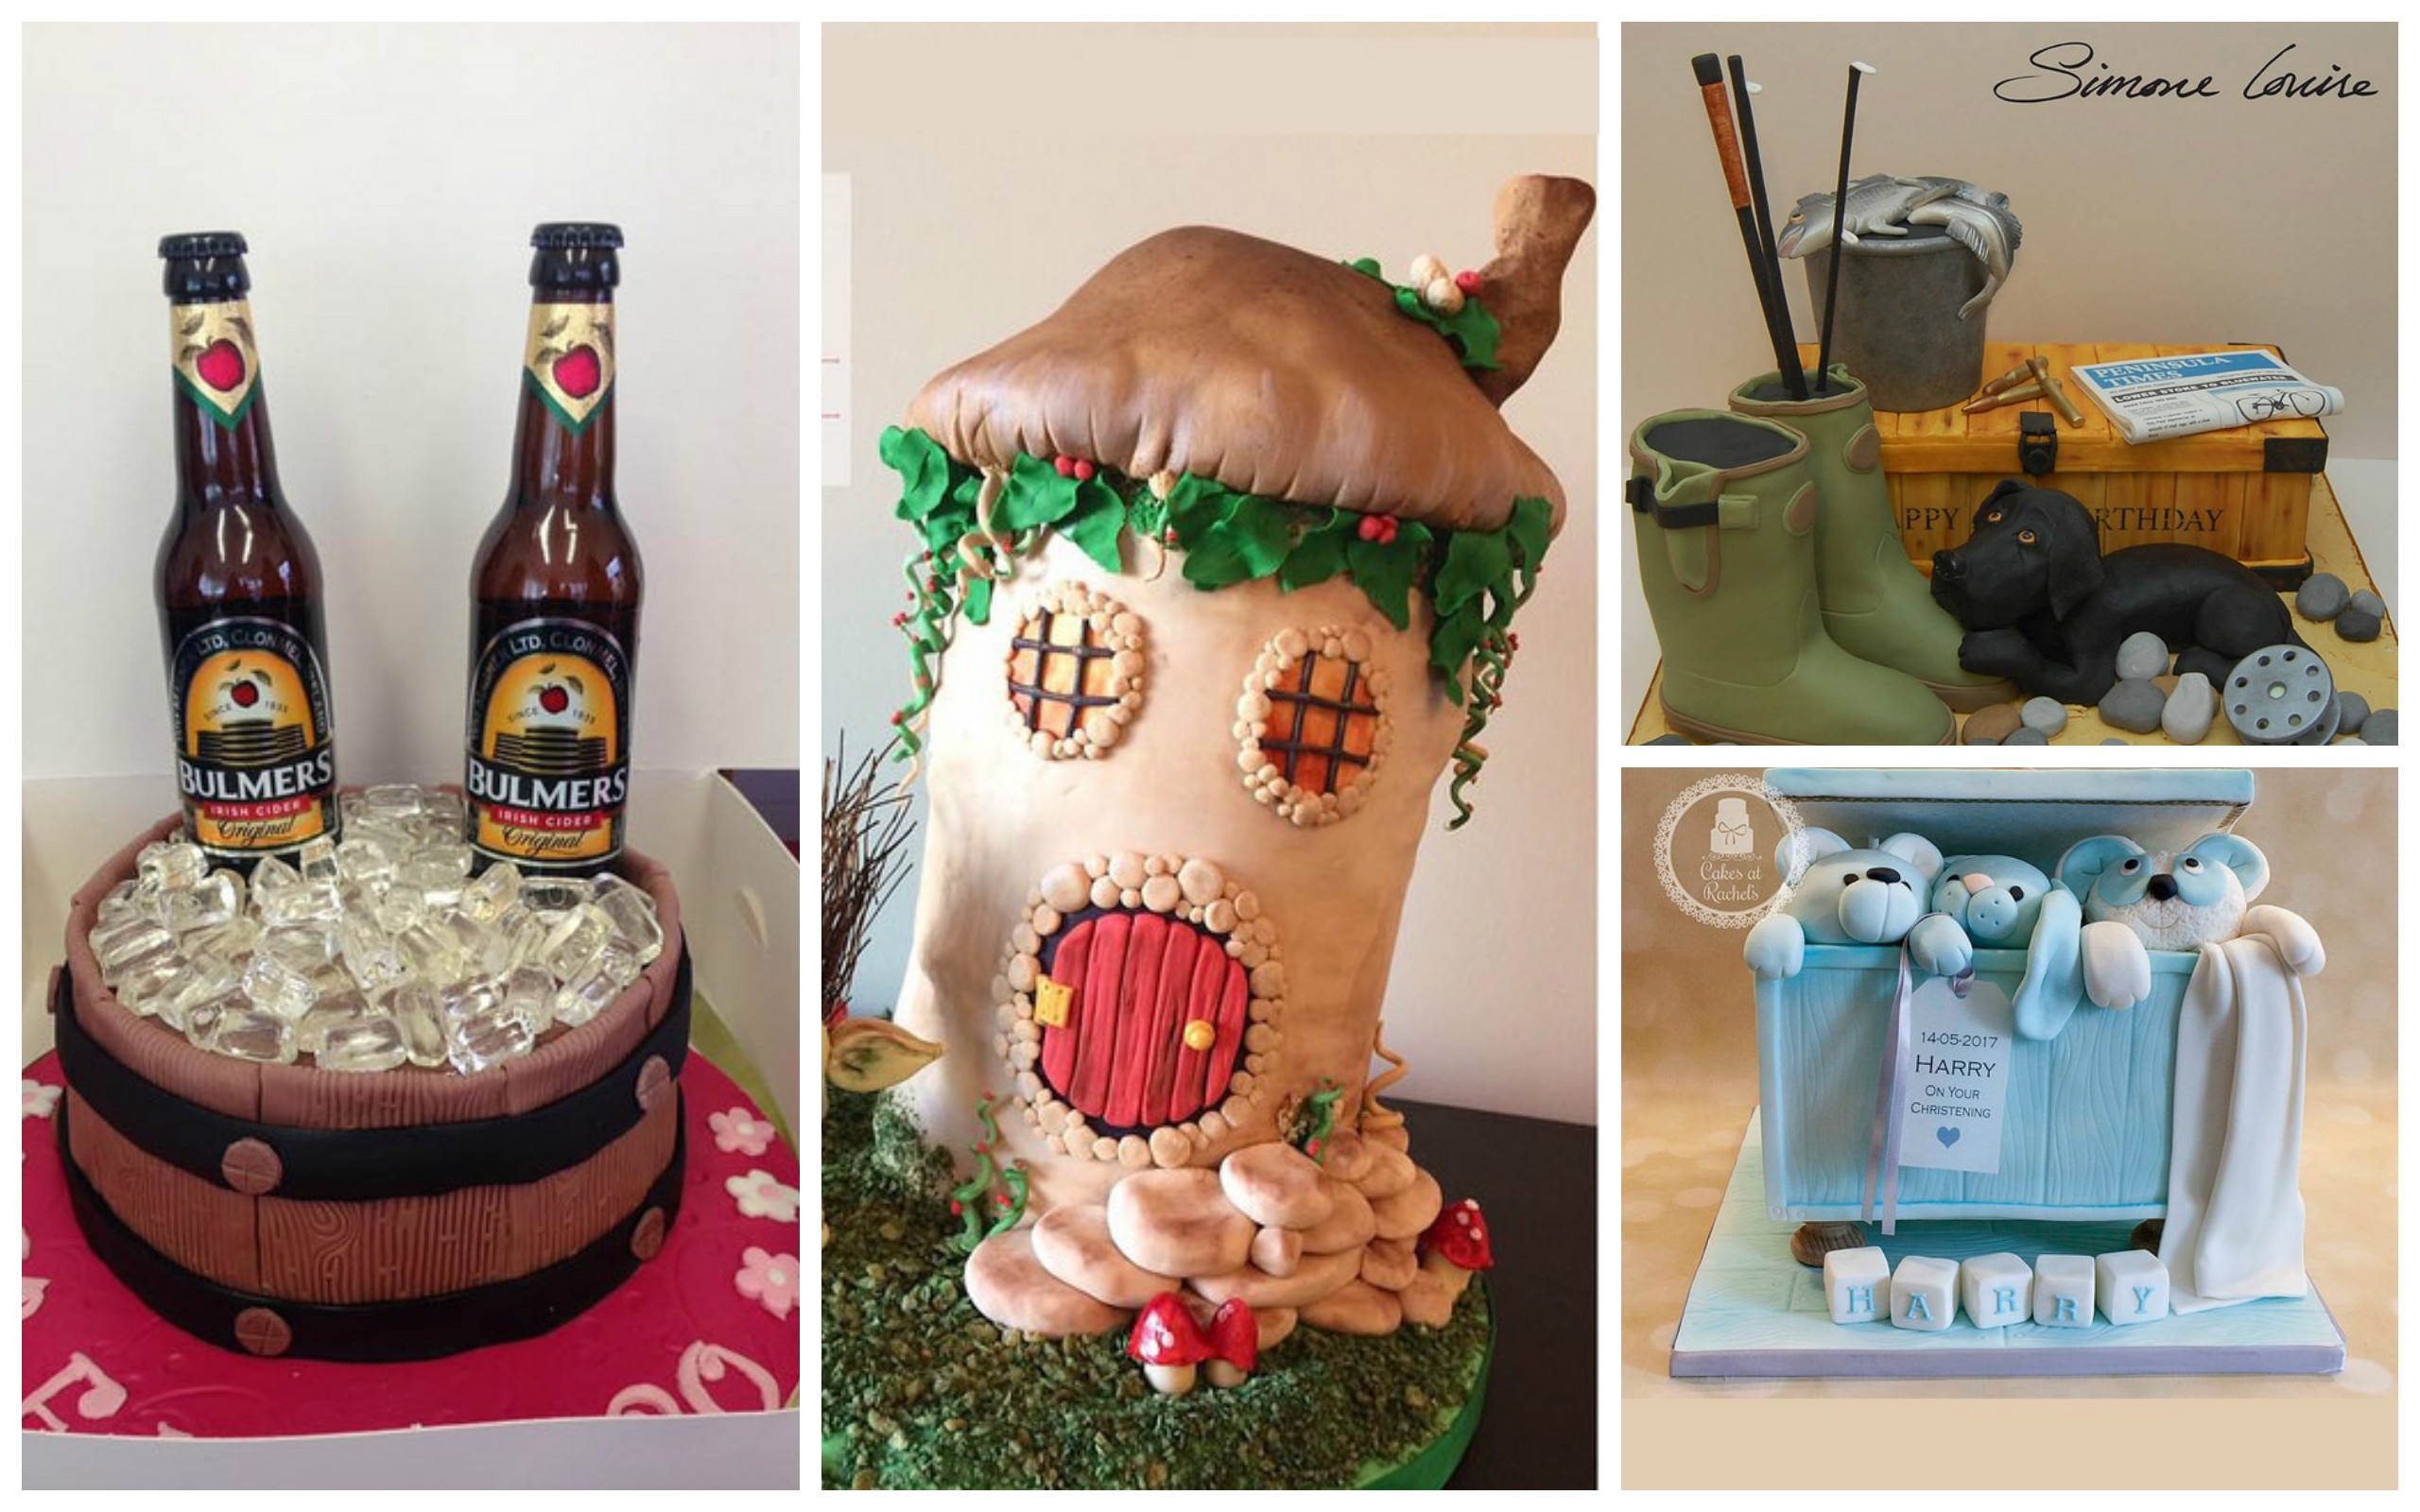 Competition: Designer of the World s Most Incredible Cake